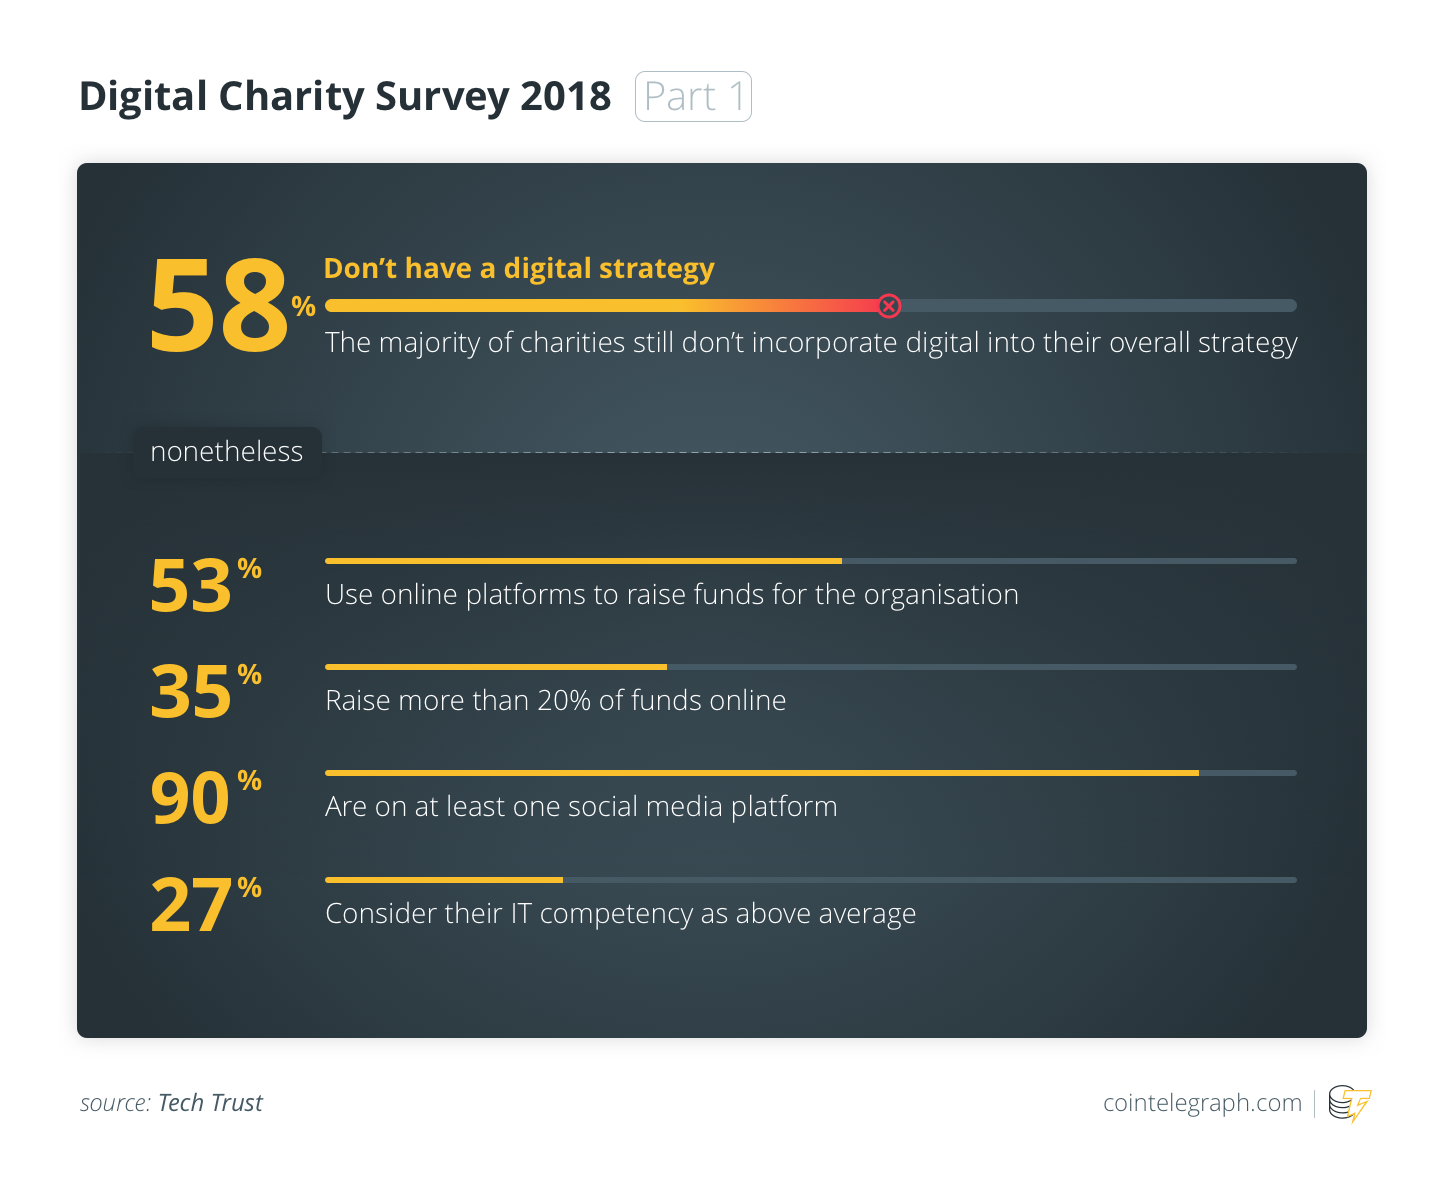 Digital Charity Survey 2018 (Part 1)